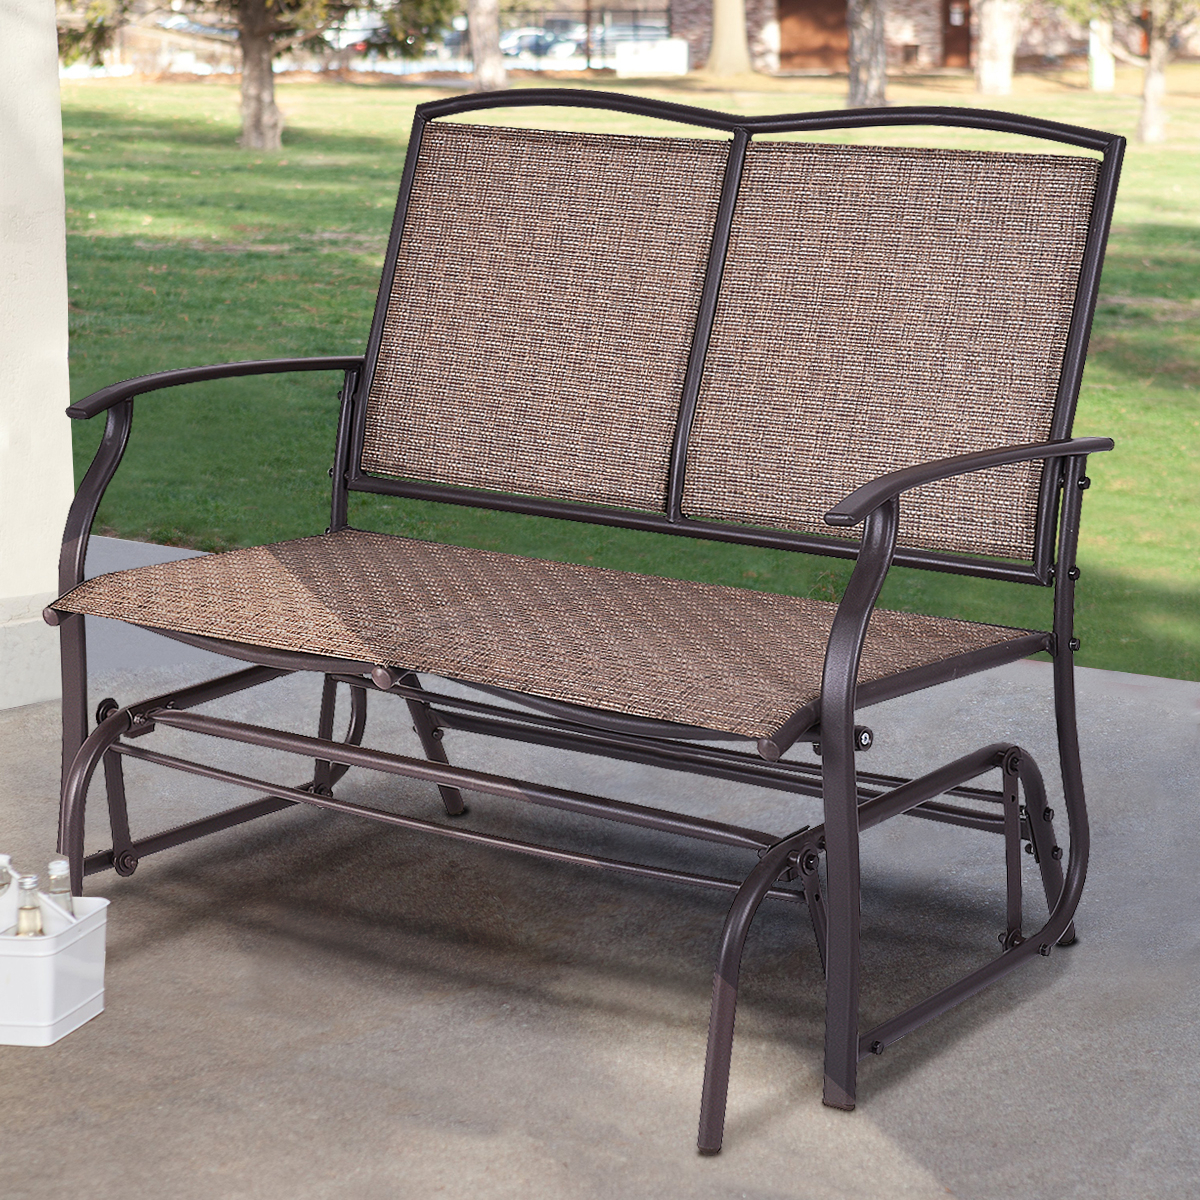 Widely Used Iron Double Patio Glider Benches With Regard To Costway Patio Glider Rocking Bench Double 2 Person Chair Loveseat Armchair  Backyard – Walmart (Gallery 3 of 30)